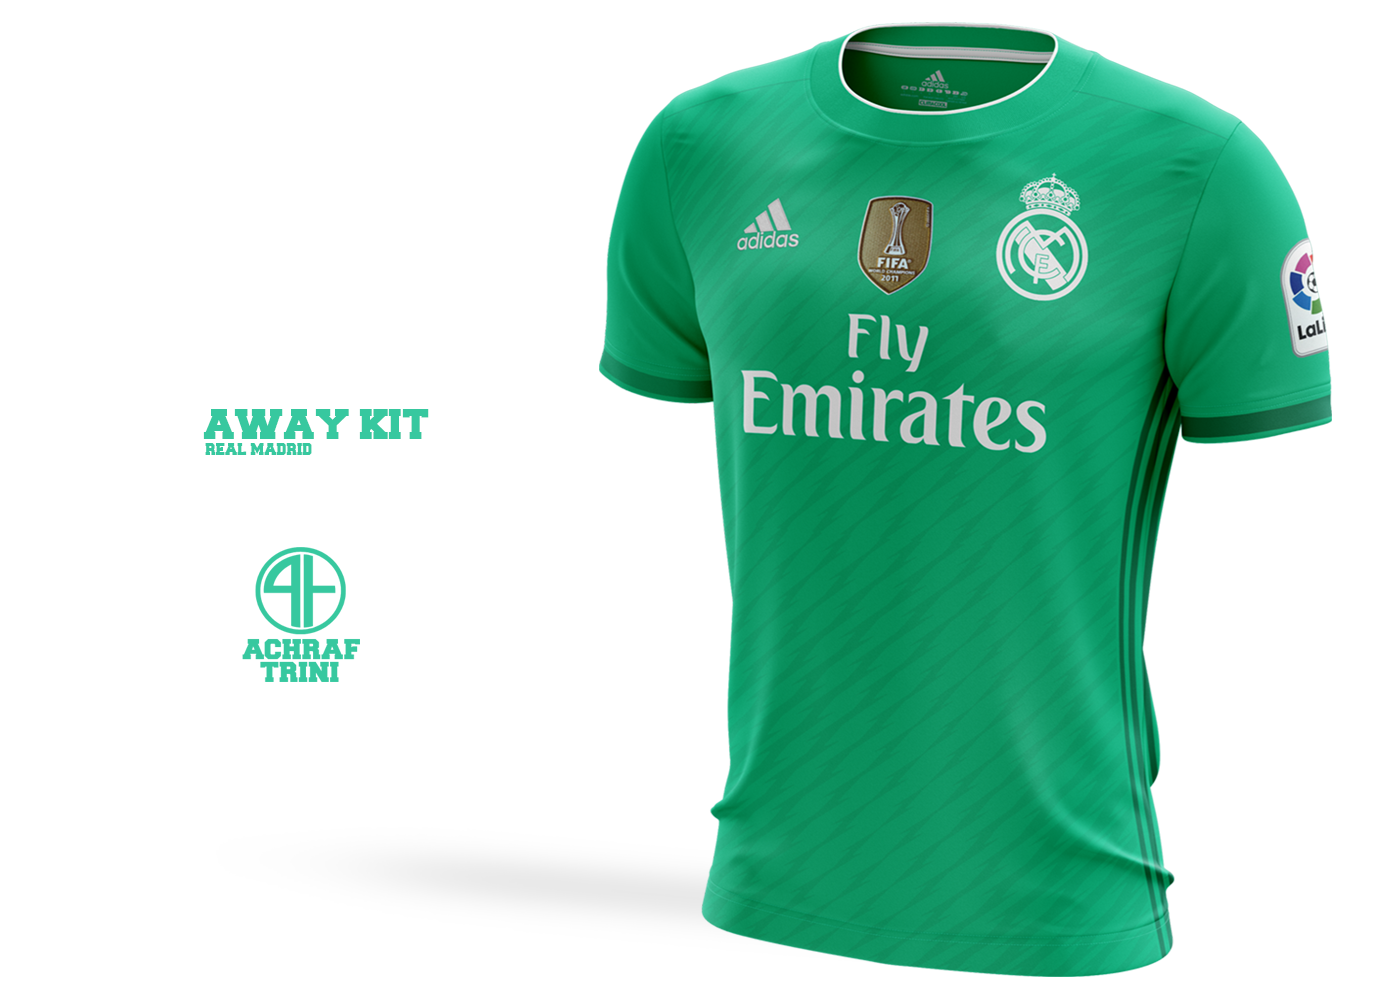 buy online a97bc 5847c Real madrid | Adidas Concept shirts 2018-19 on Behance